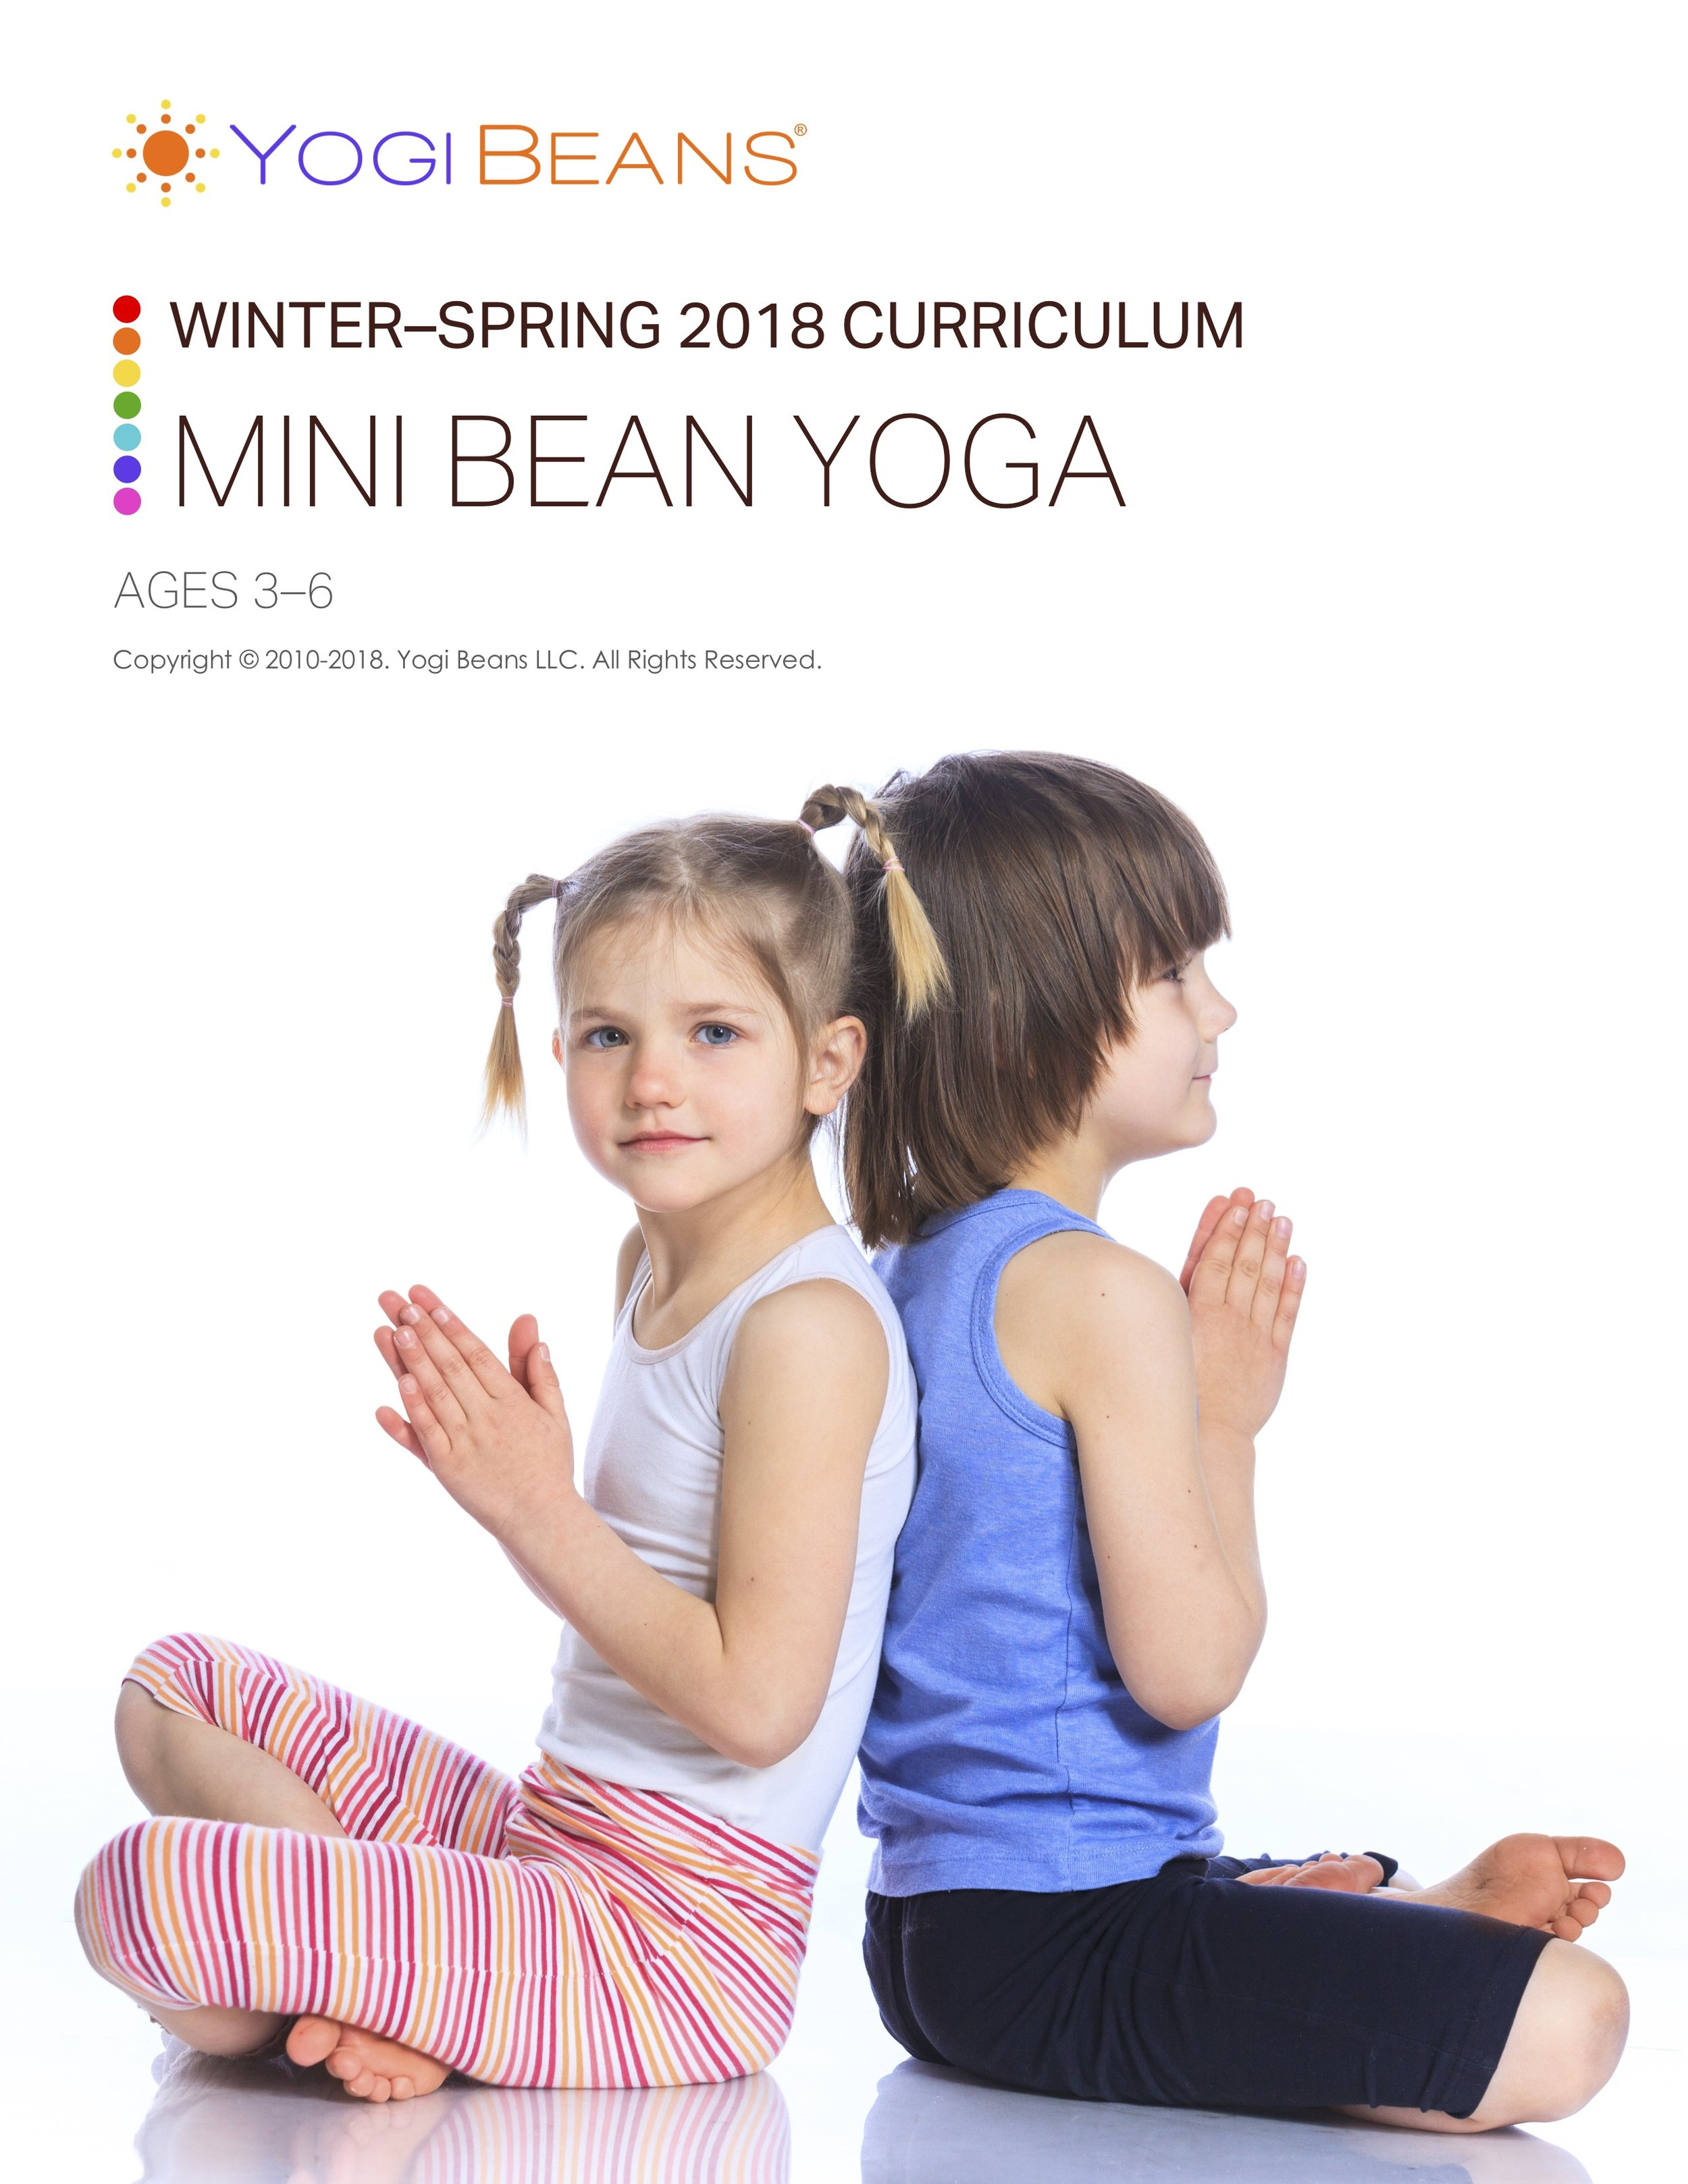 MINI BEAN YOGA (AGES 3-6)